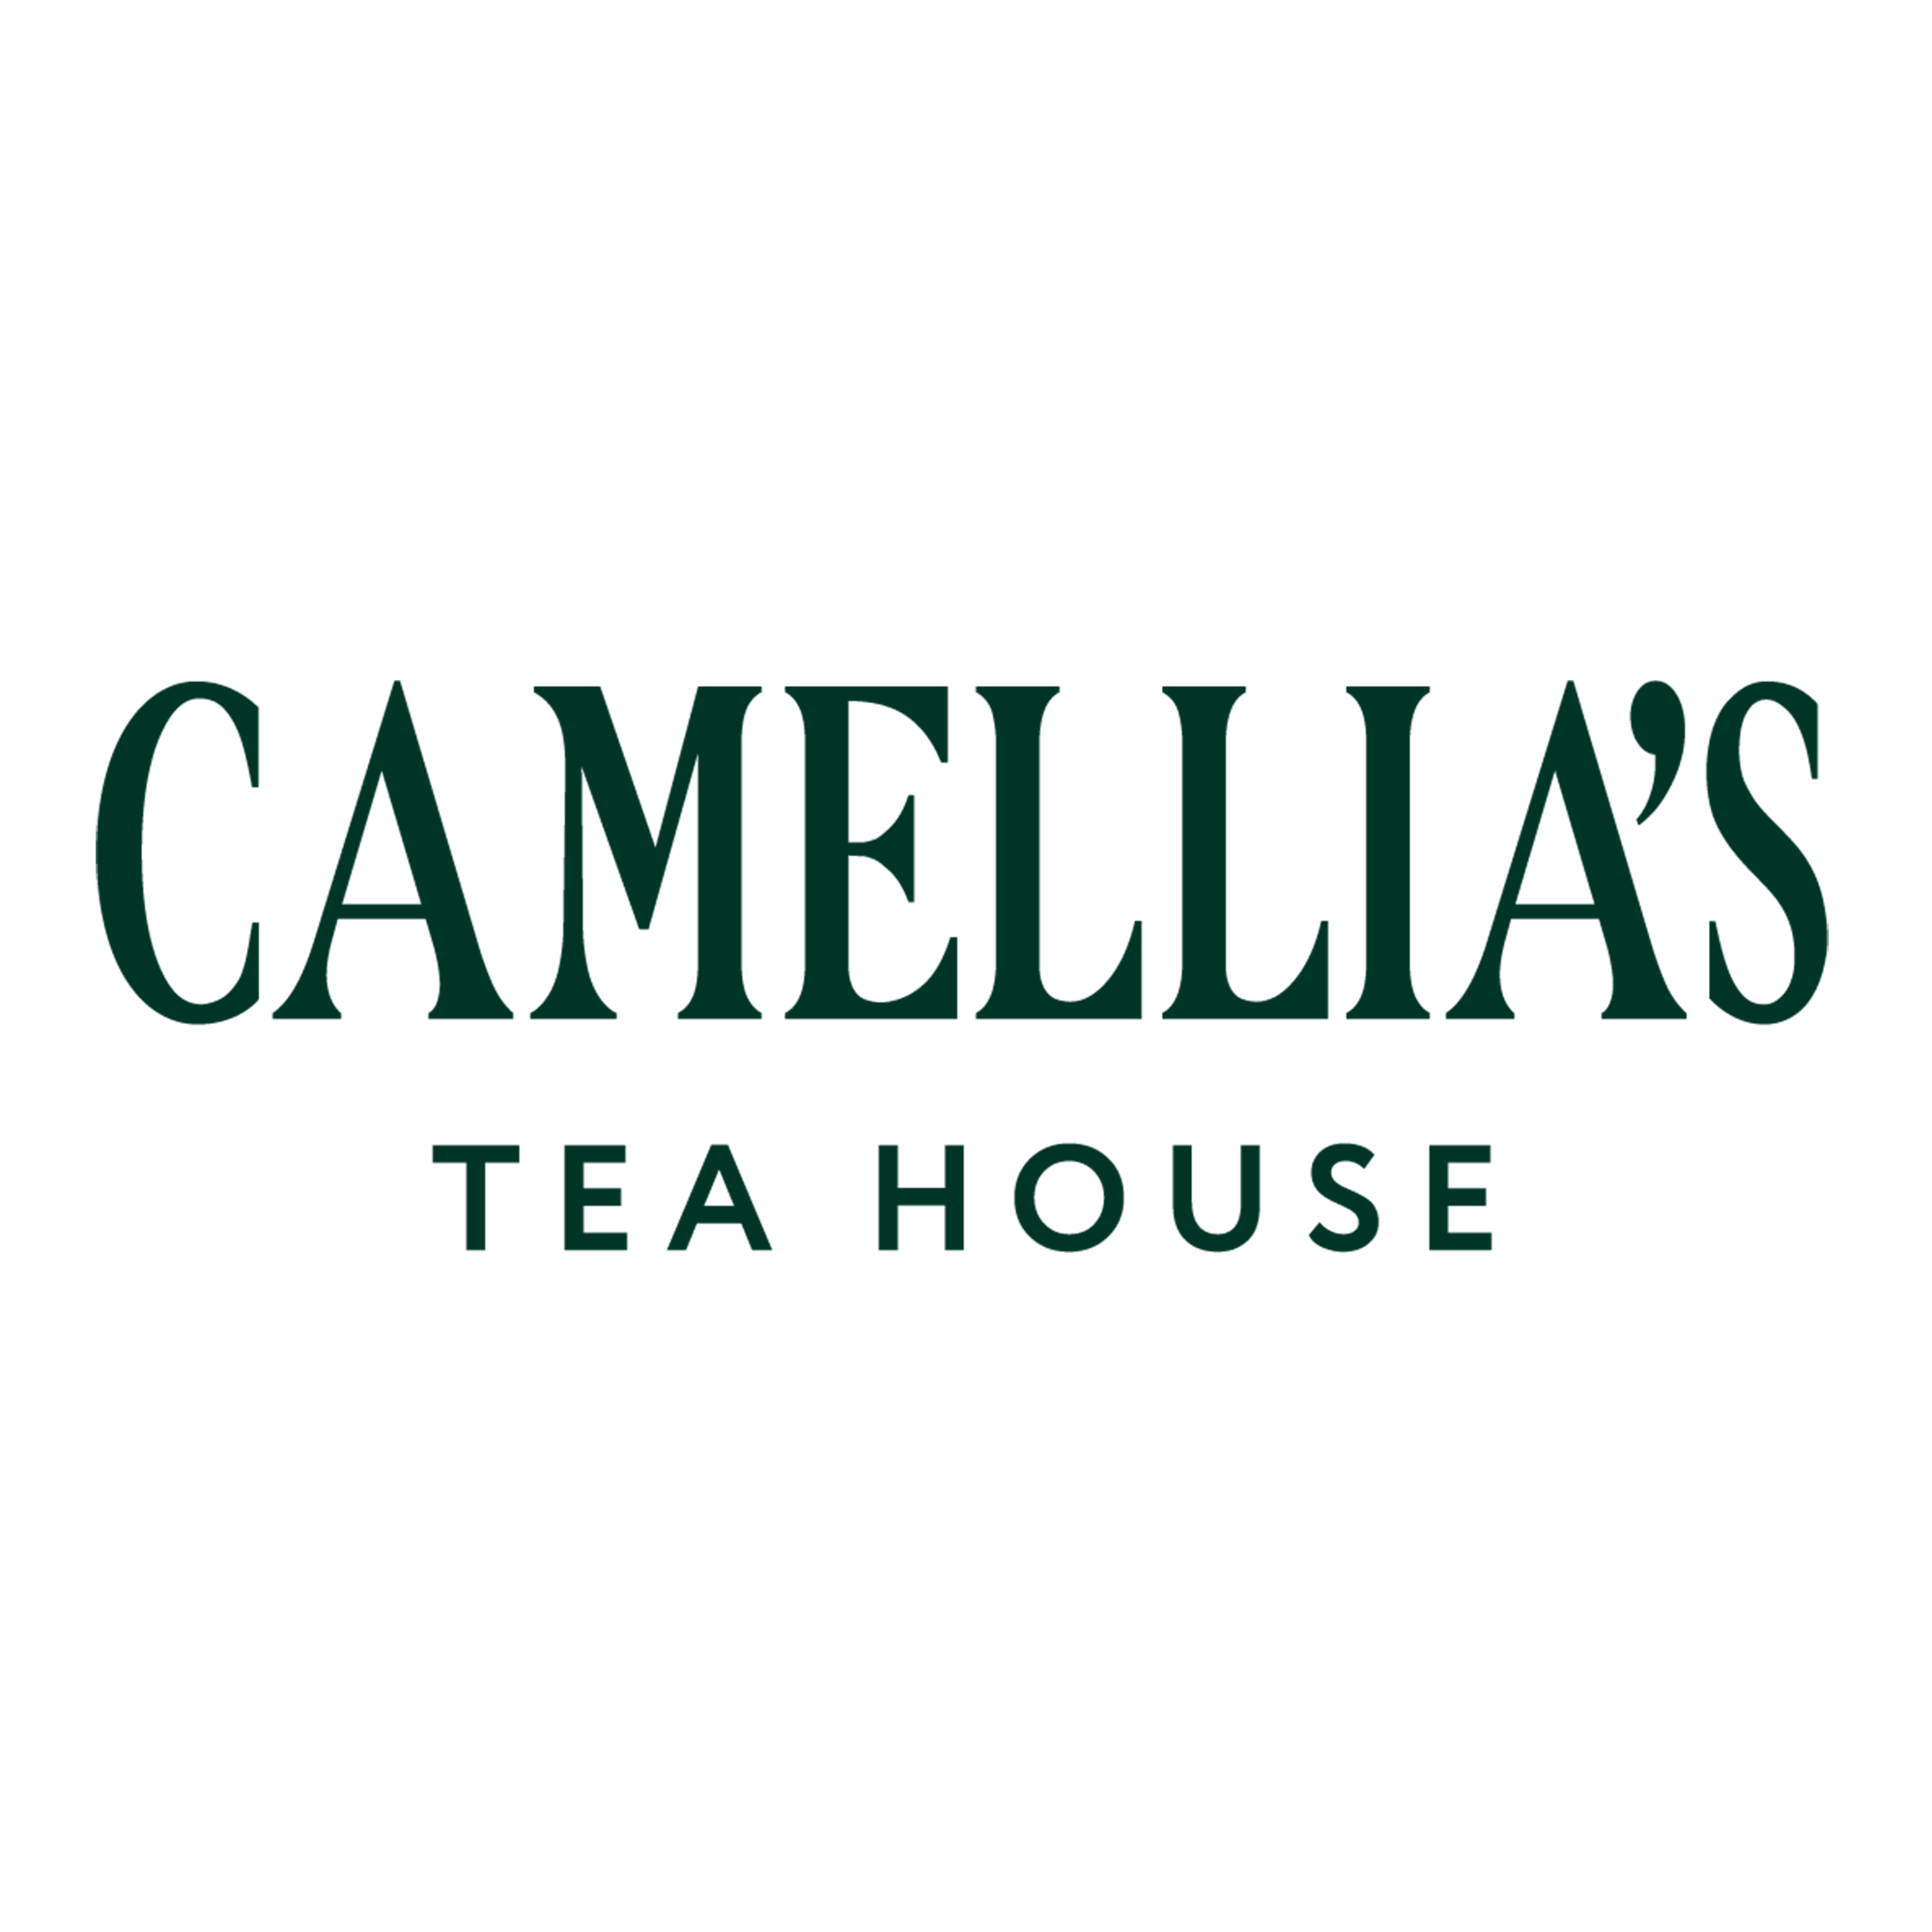 Camellias Tea House